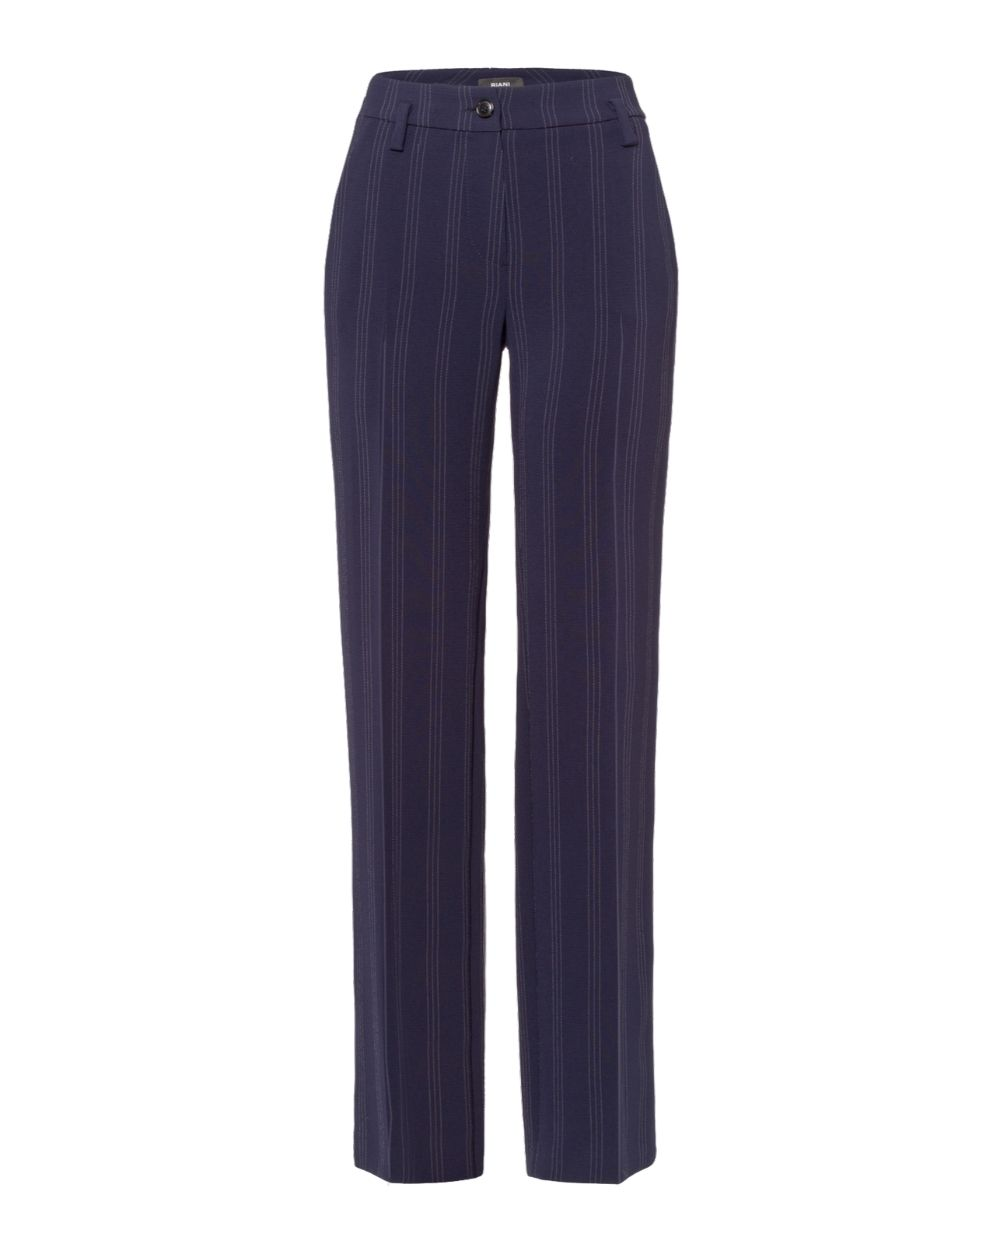 Riani Deep Blue Trousers - Snooty Frox